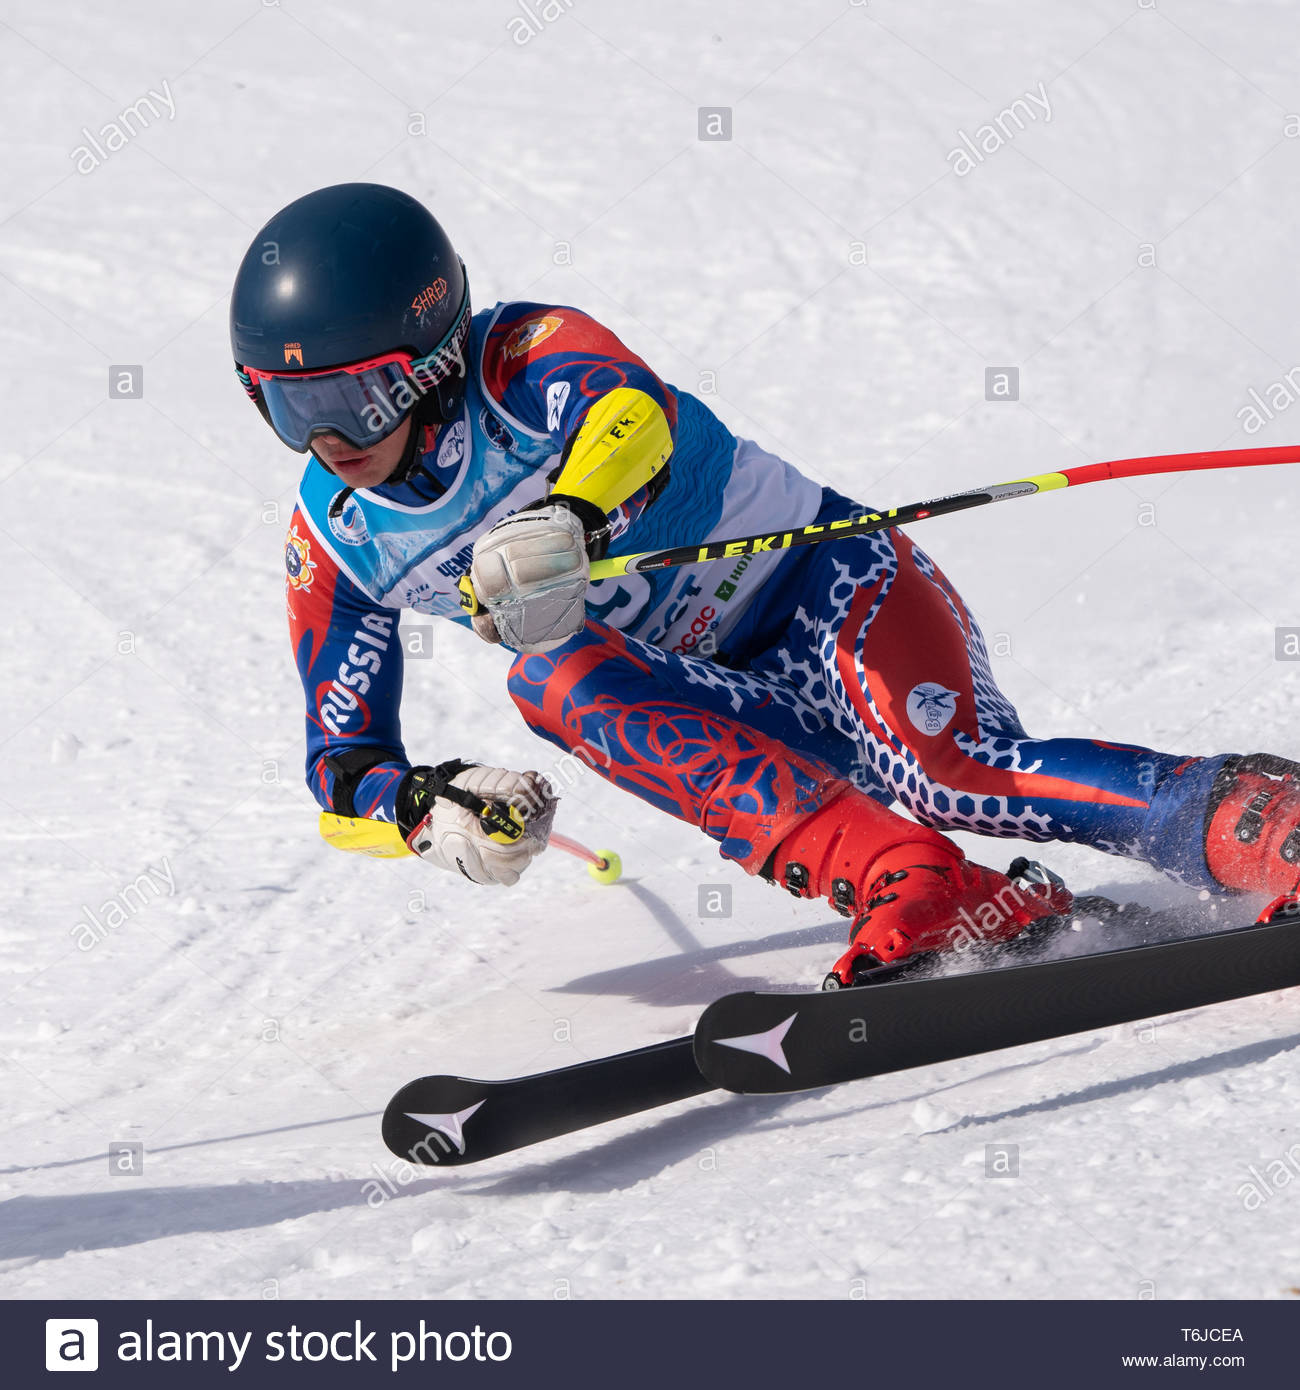 KAMCHATKA PENINSULA, RUSSIA - APR 1, 2019: Mountain skier Prikhodchenko Vadim (Moscow) skiing down mount slope. Russian Alpine Skiing Cup, Internation - Stock Image